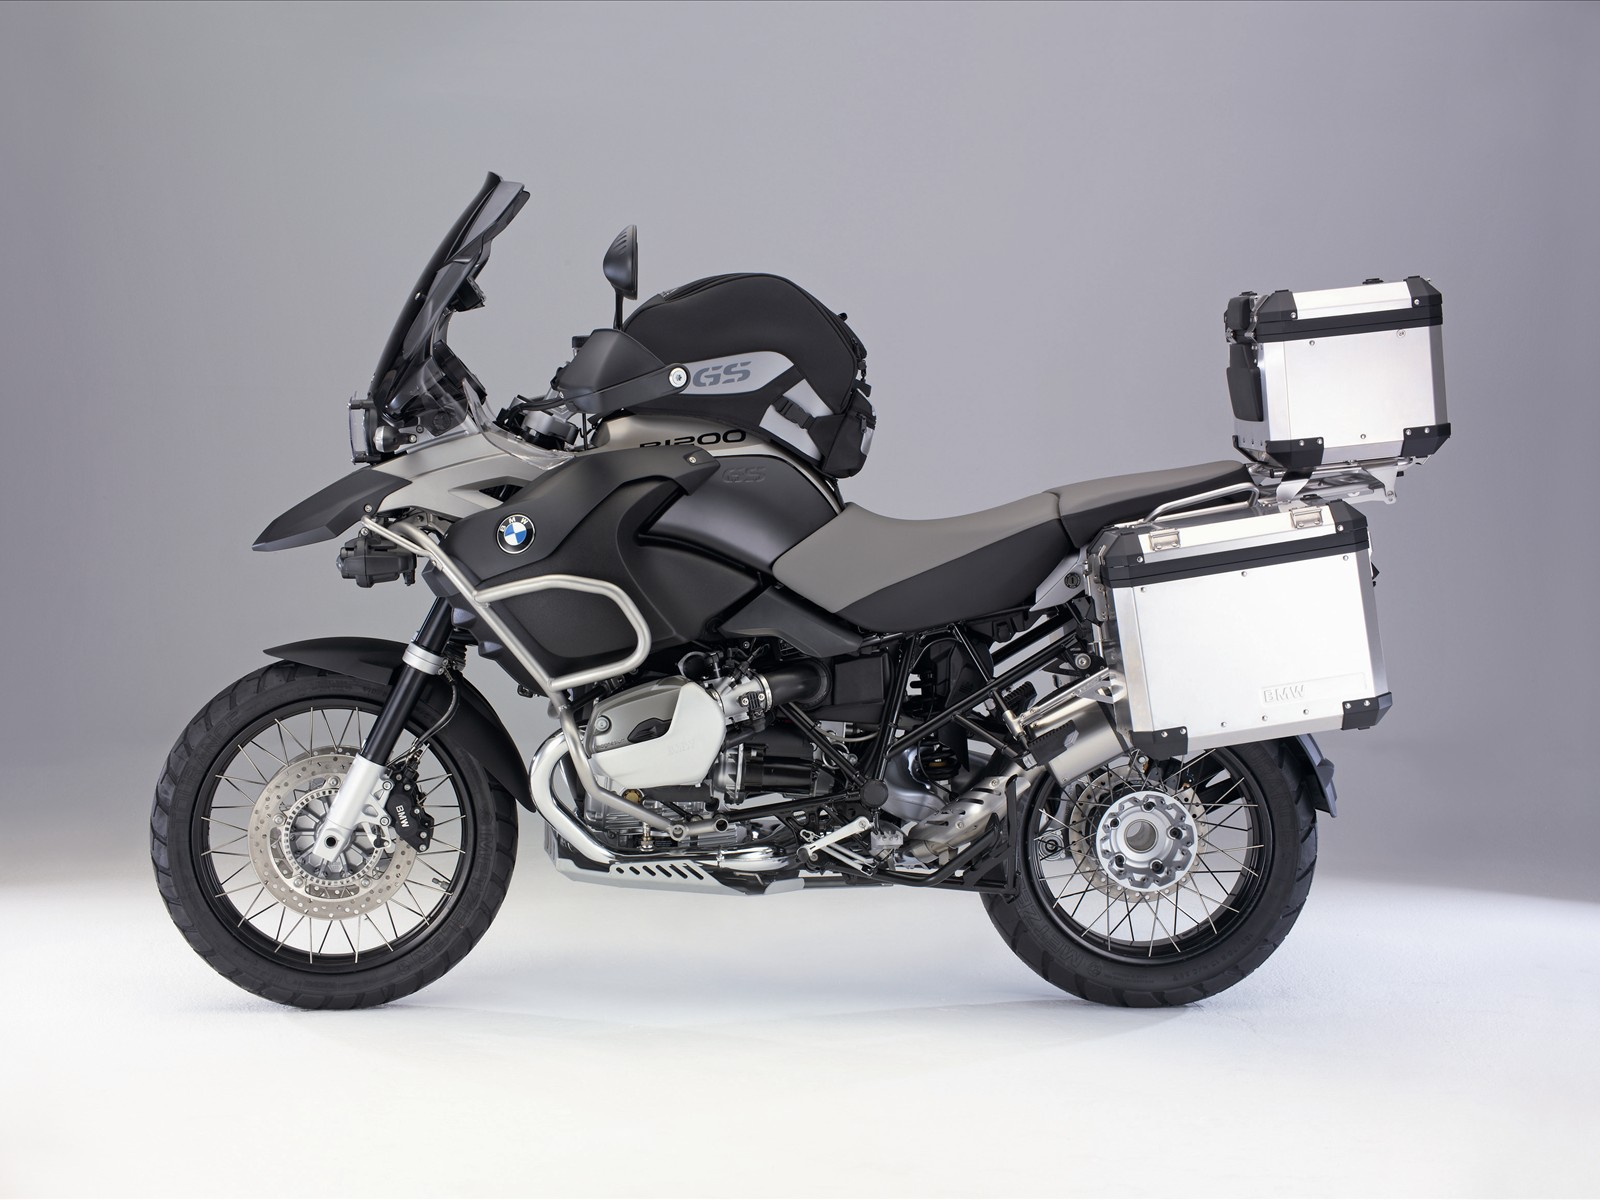 2008 bmw r1200gs motorcycle accident lawyers. Black Bedroom Furniture Sets. Home Design Ideas